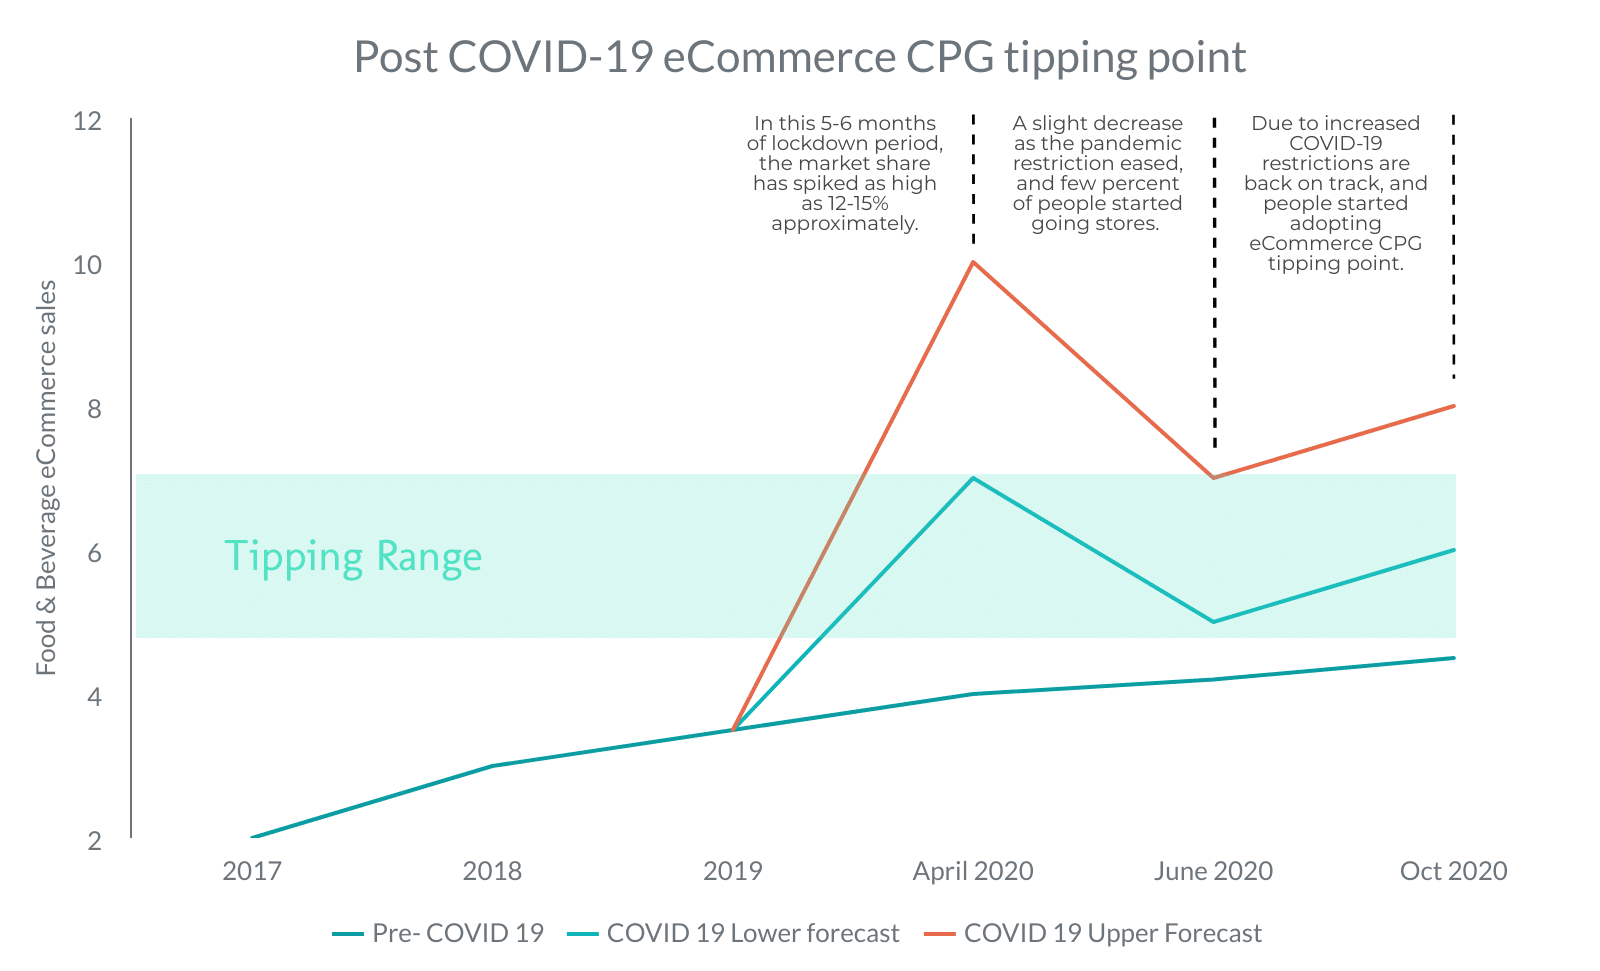 CPG tipping point